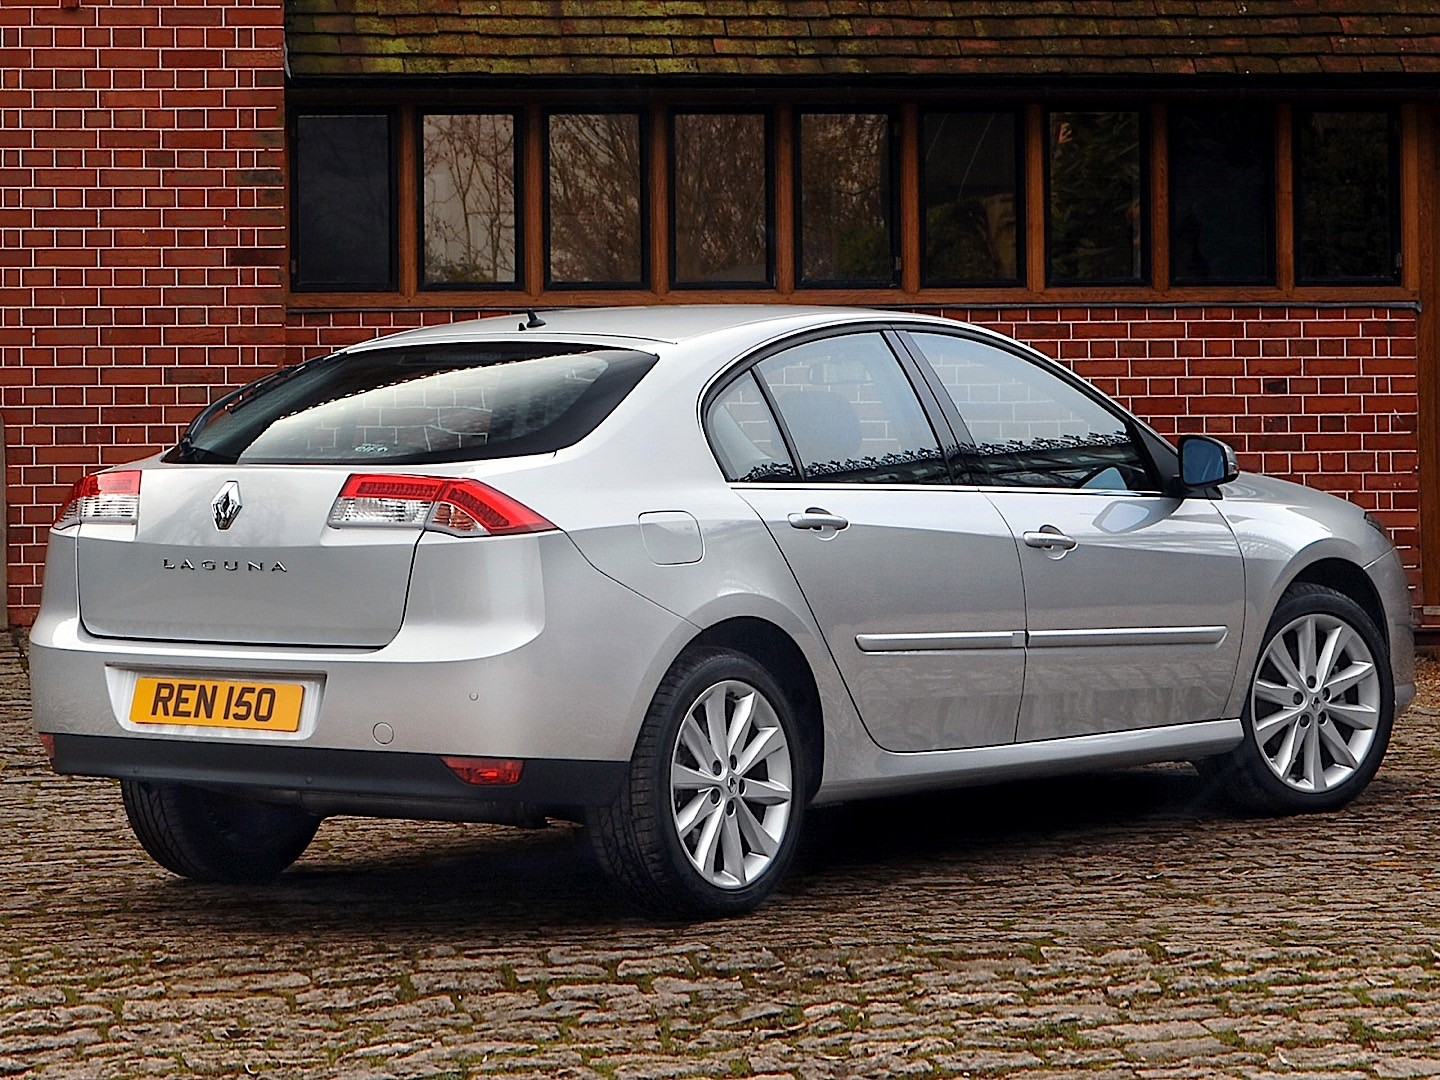 RENAULT Laguna specs & photos - 2007, 2008, 2009, 2010 ...